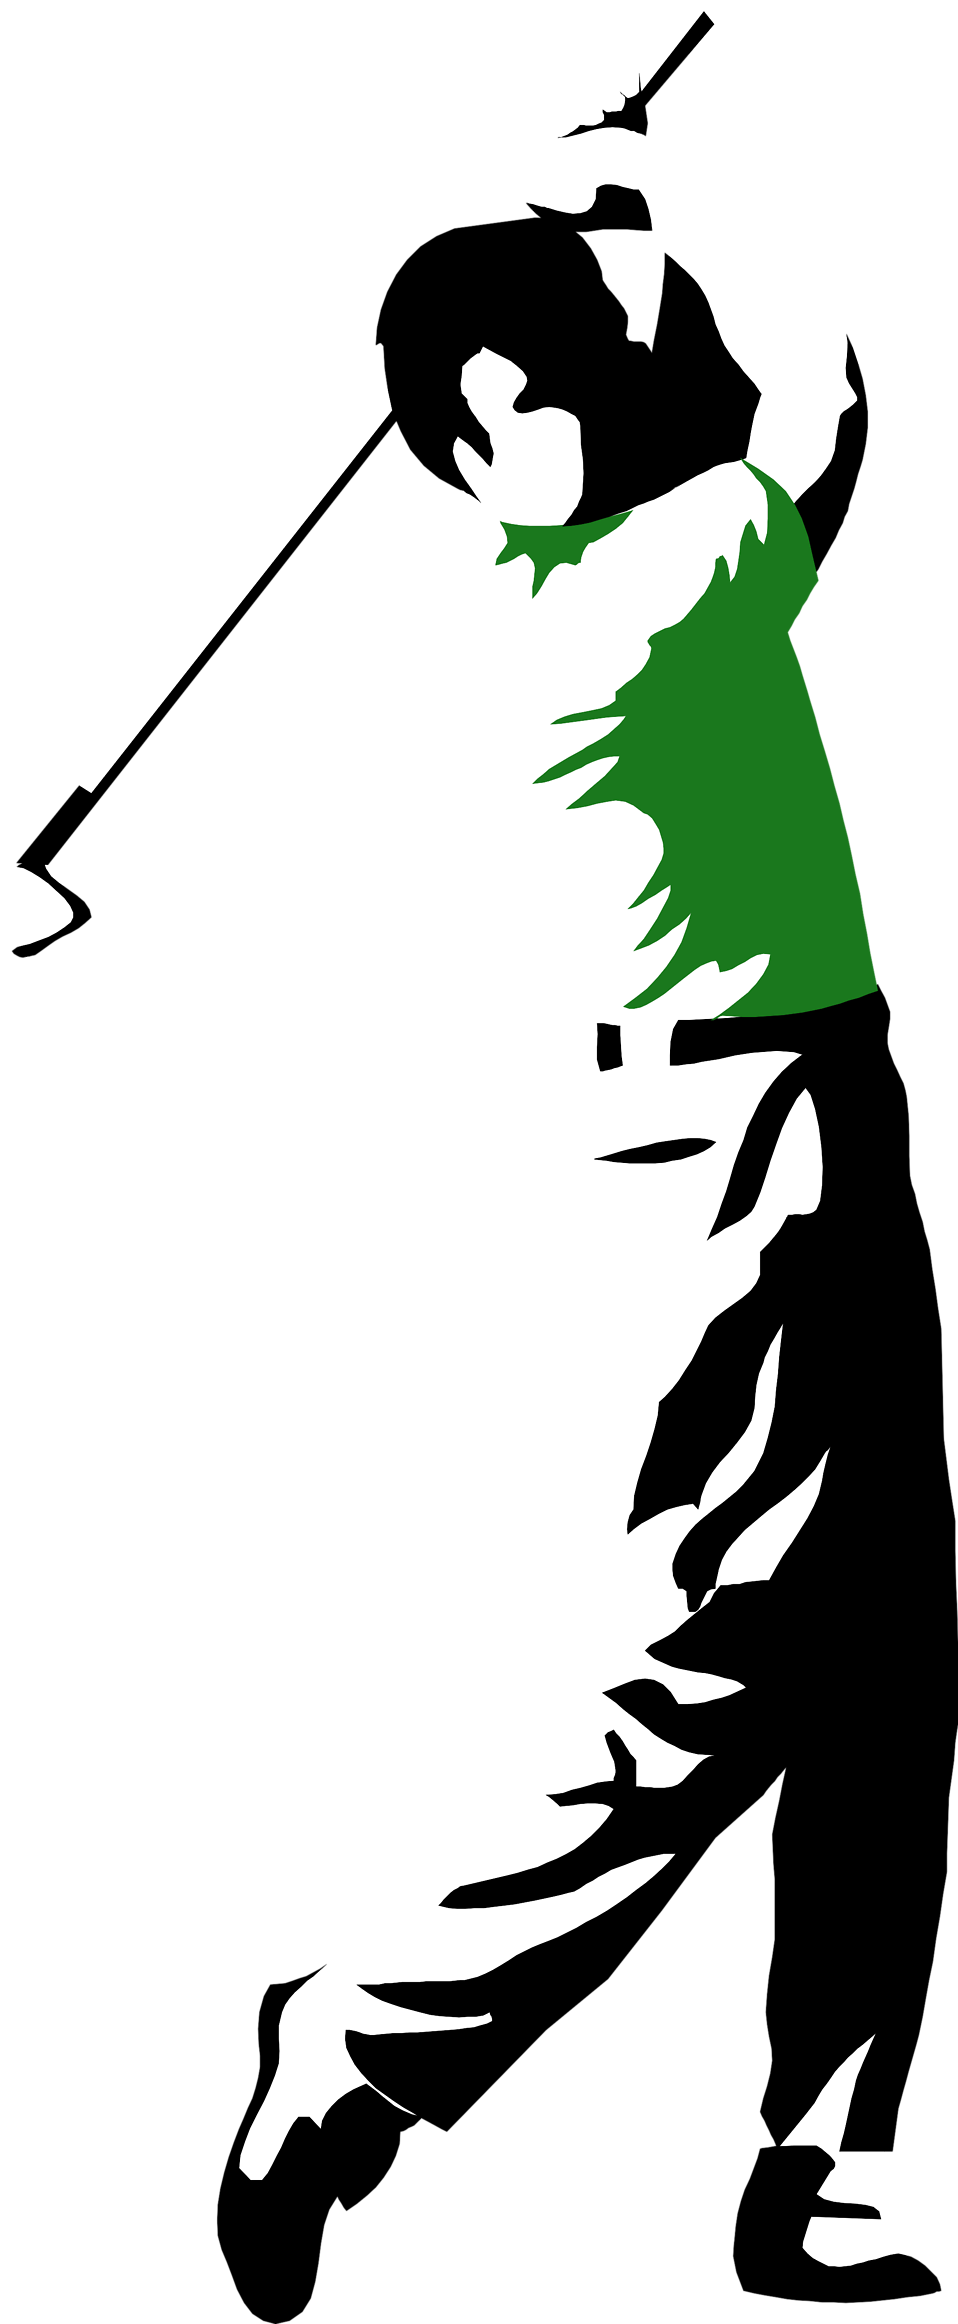 golf clipart transpare...